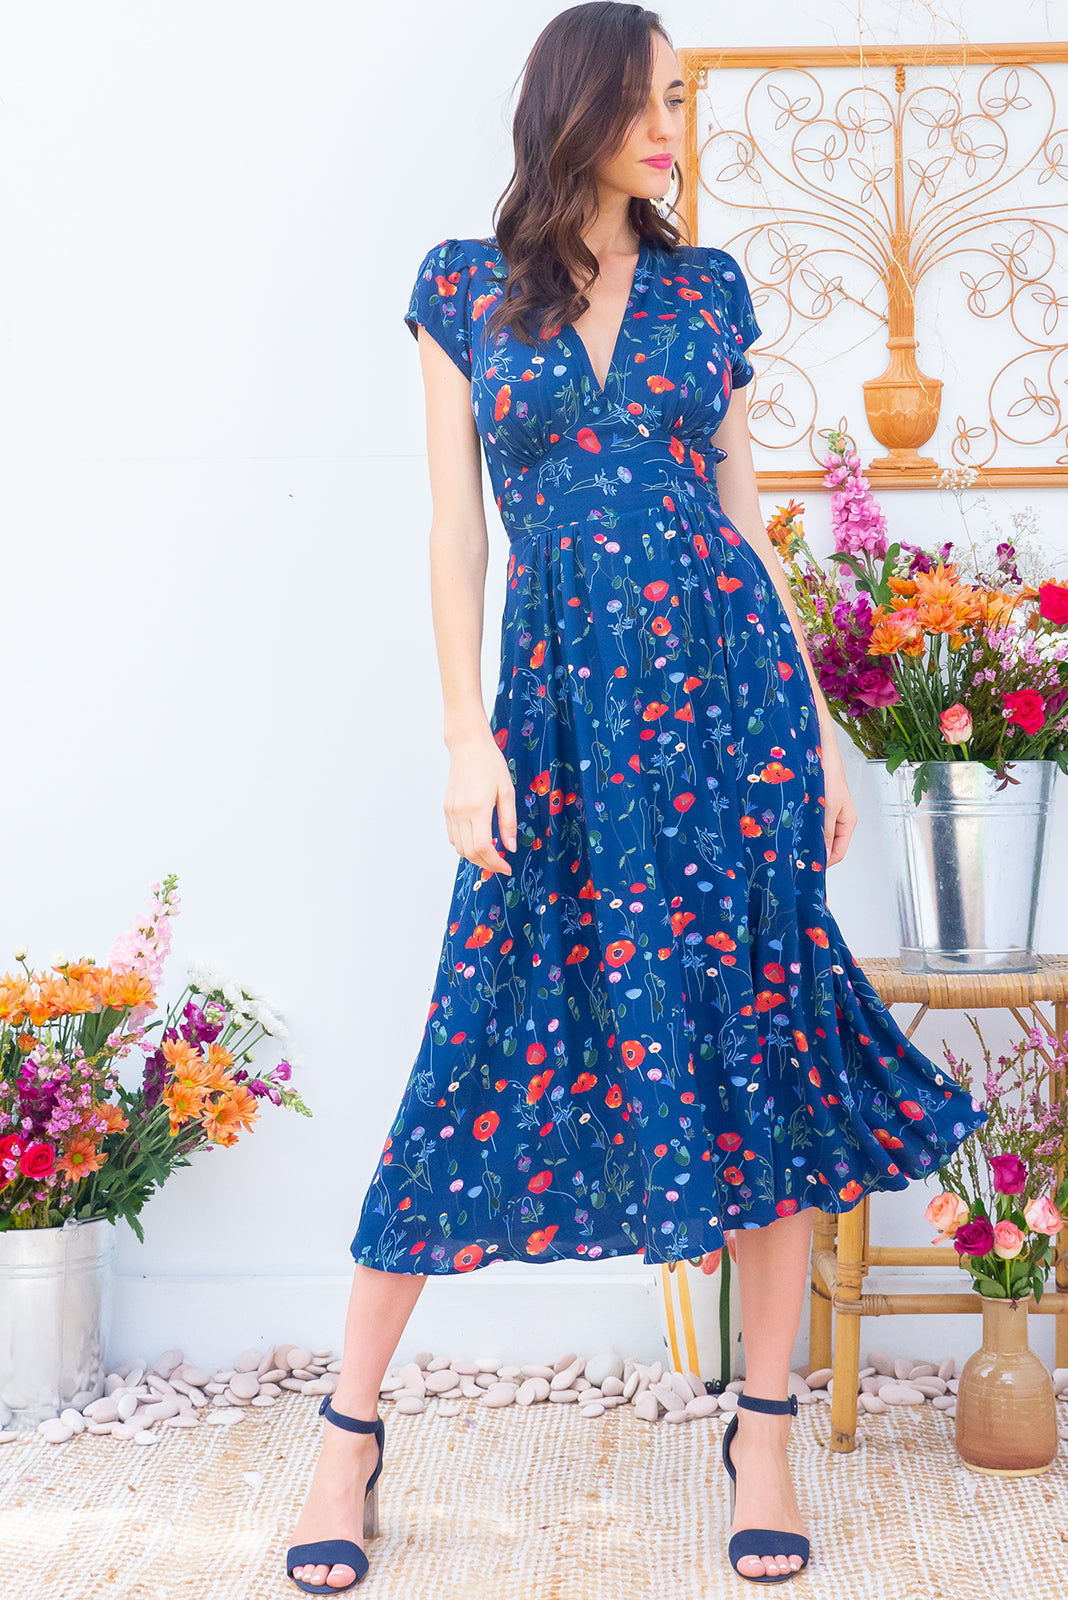 Lizzie Lea Blue Midi dress features a vintage inspired fitted basque waist and elasticated waist with a cap sleeve and deep v neck the fabric is a soft woven rayon in a soft navy floral poppy print